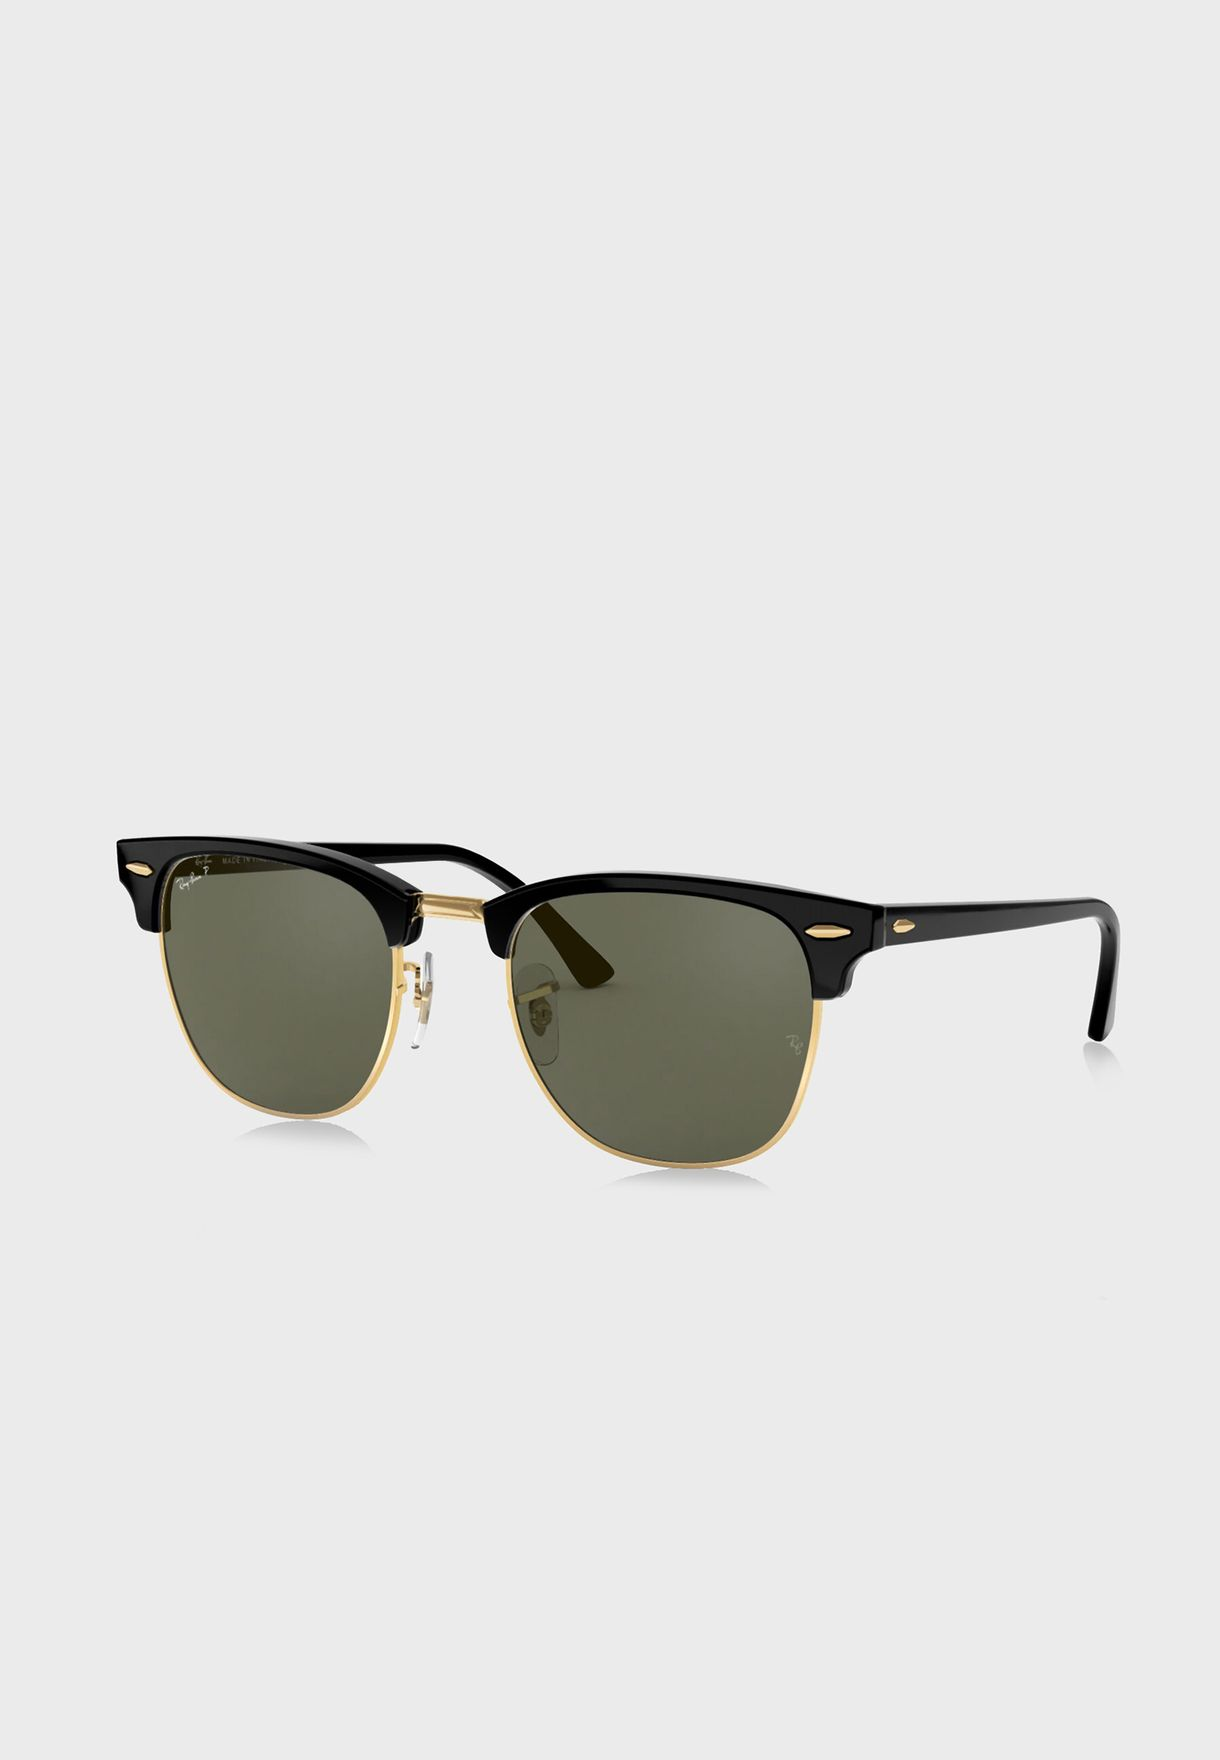 fac8873218 Shop Ray-Ban black 0RB3016 Clubmaster Sunglasses 805289346883 for ...